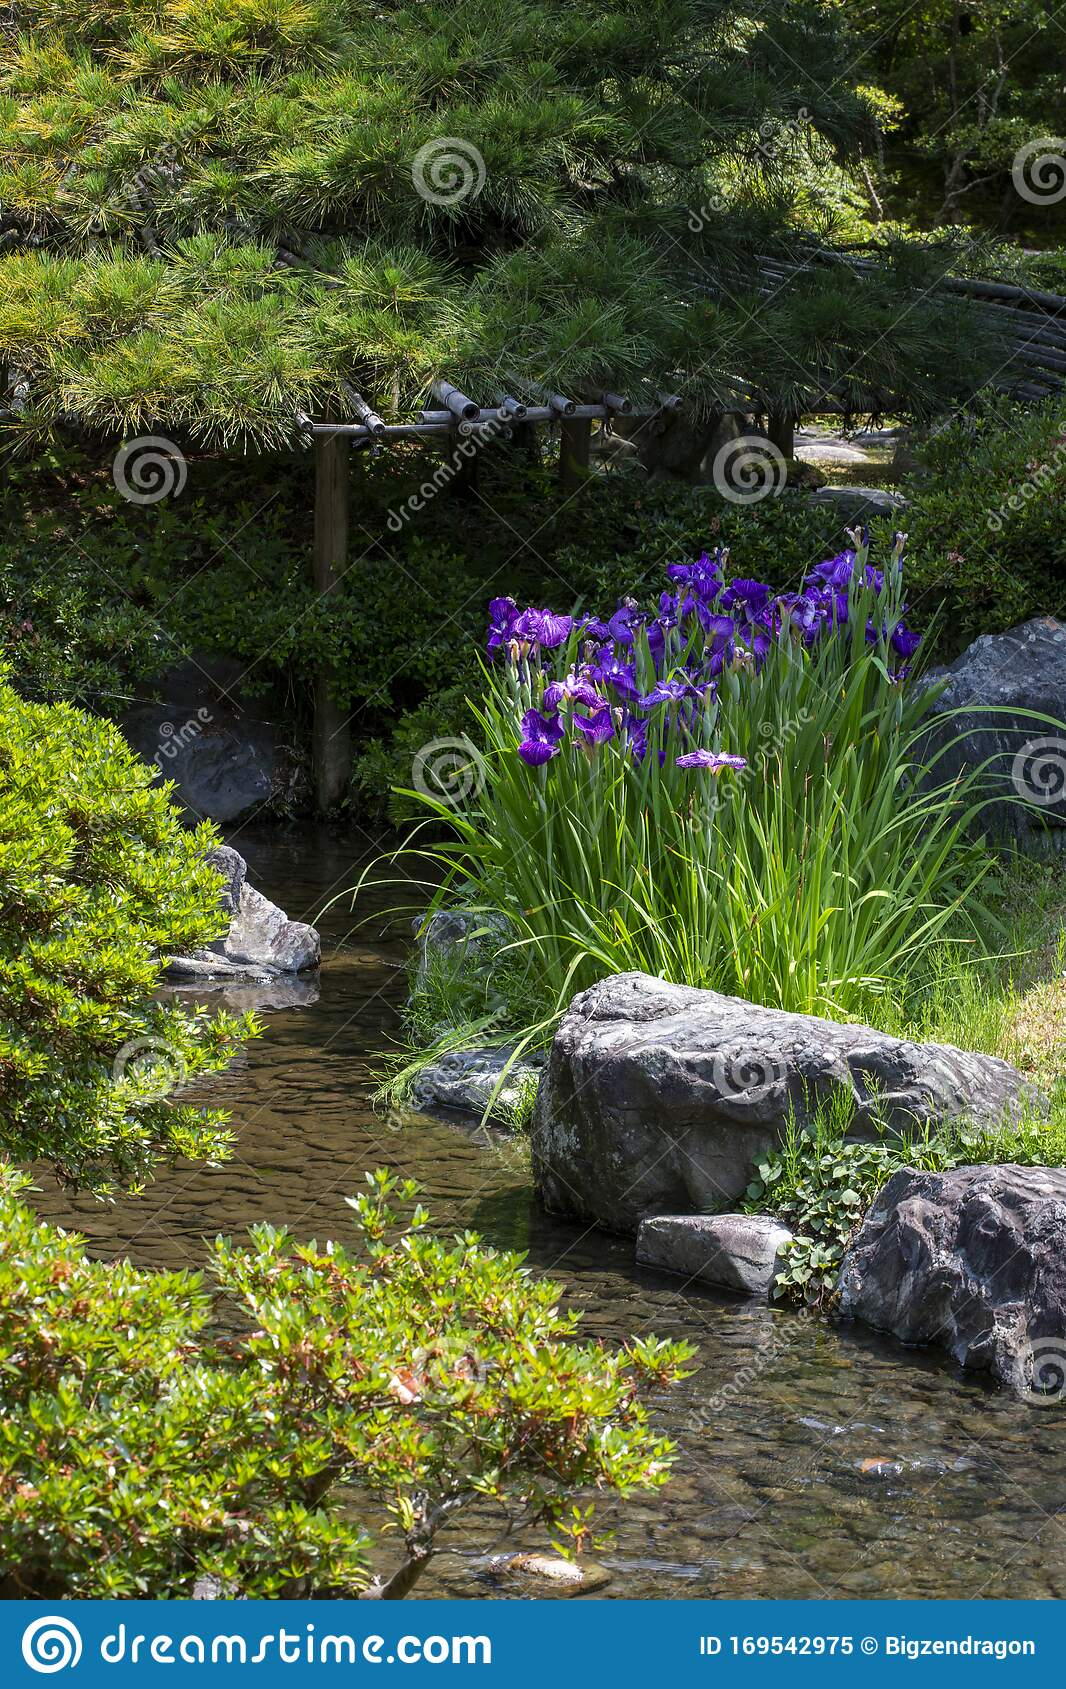 Red Blooming Irises Near Stream In Japanese Garden Stock Image Image Of Stream Deer 169542975